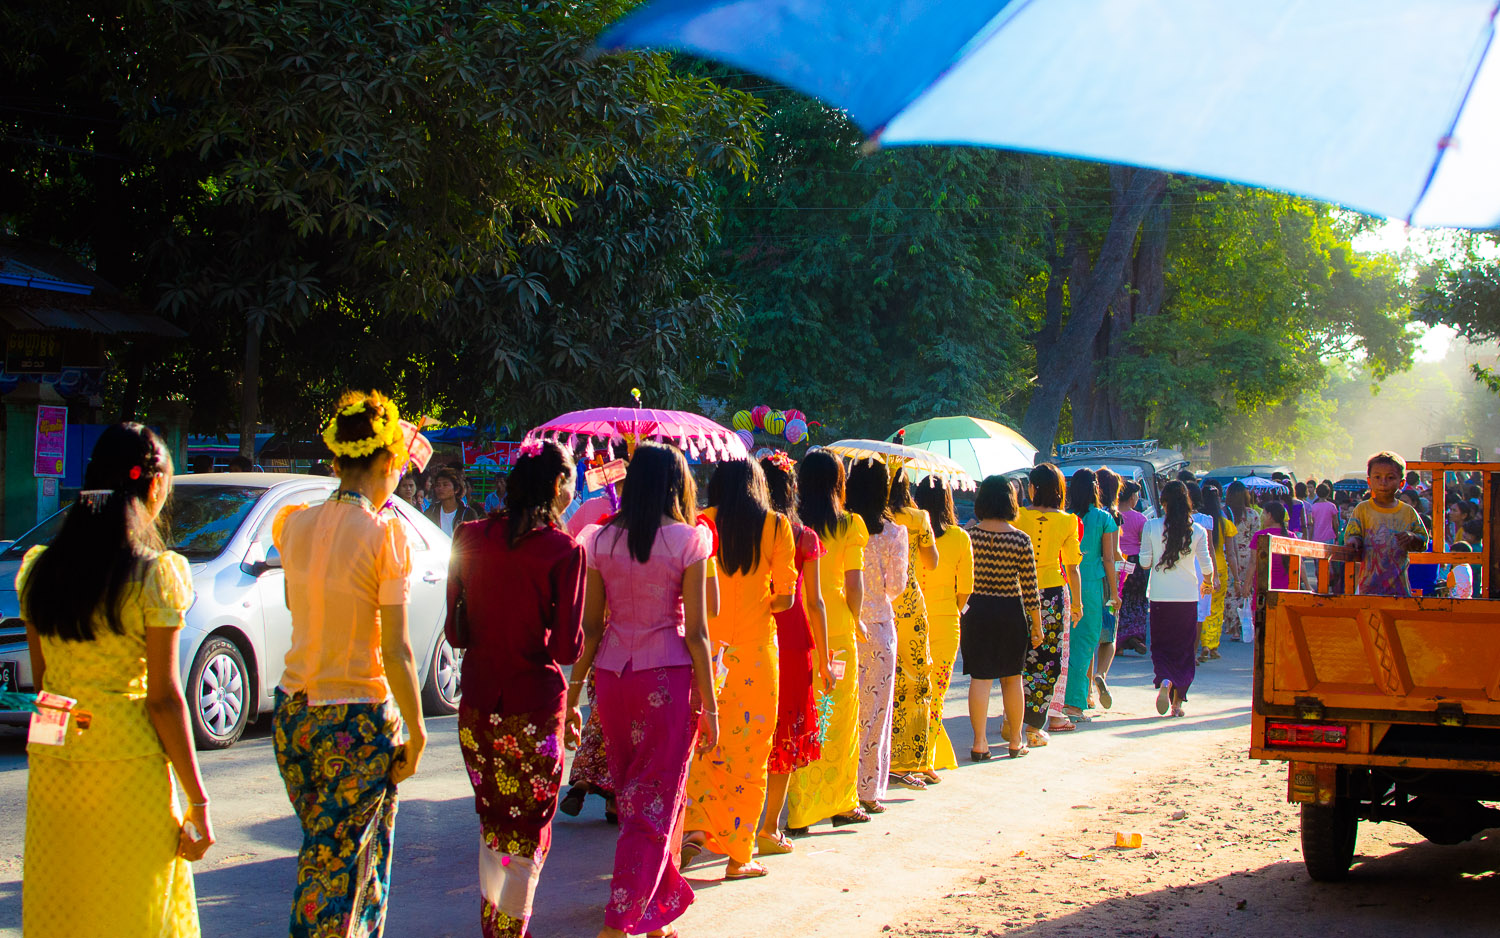 A row of women walk down the street as the procession moves toward Shwezigon Pagoda in Nyaung U, Myanmar (Burma).  © Dustin Main 2014